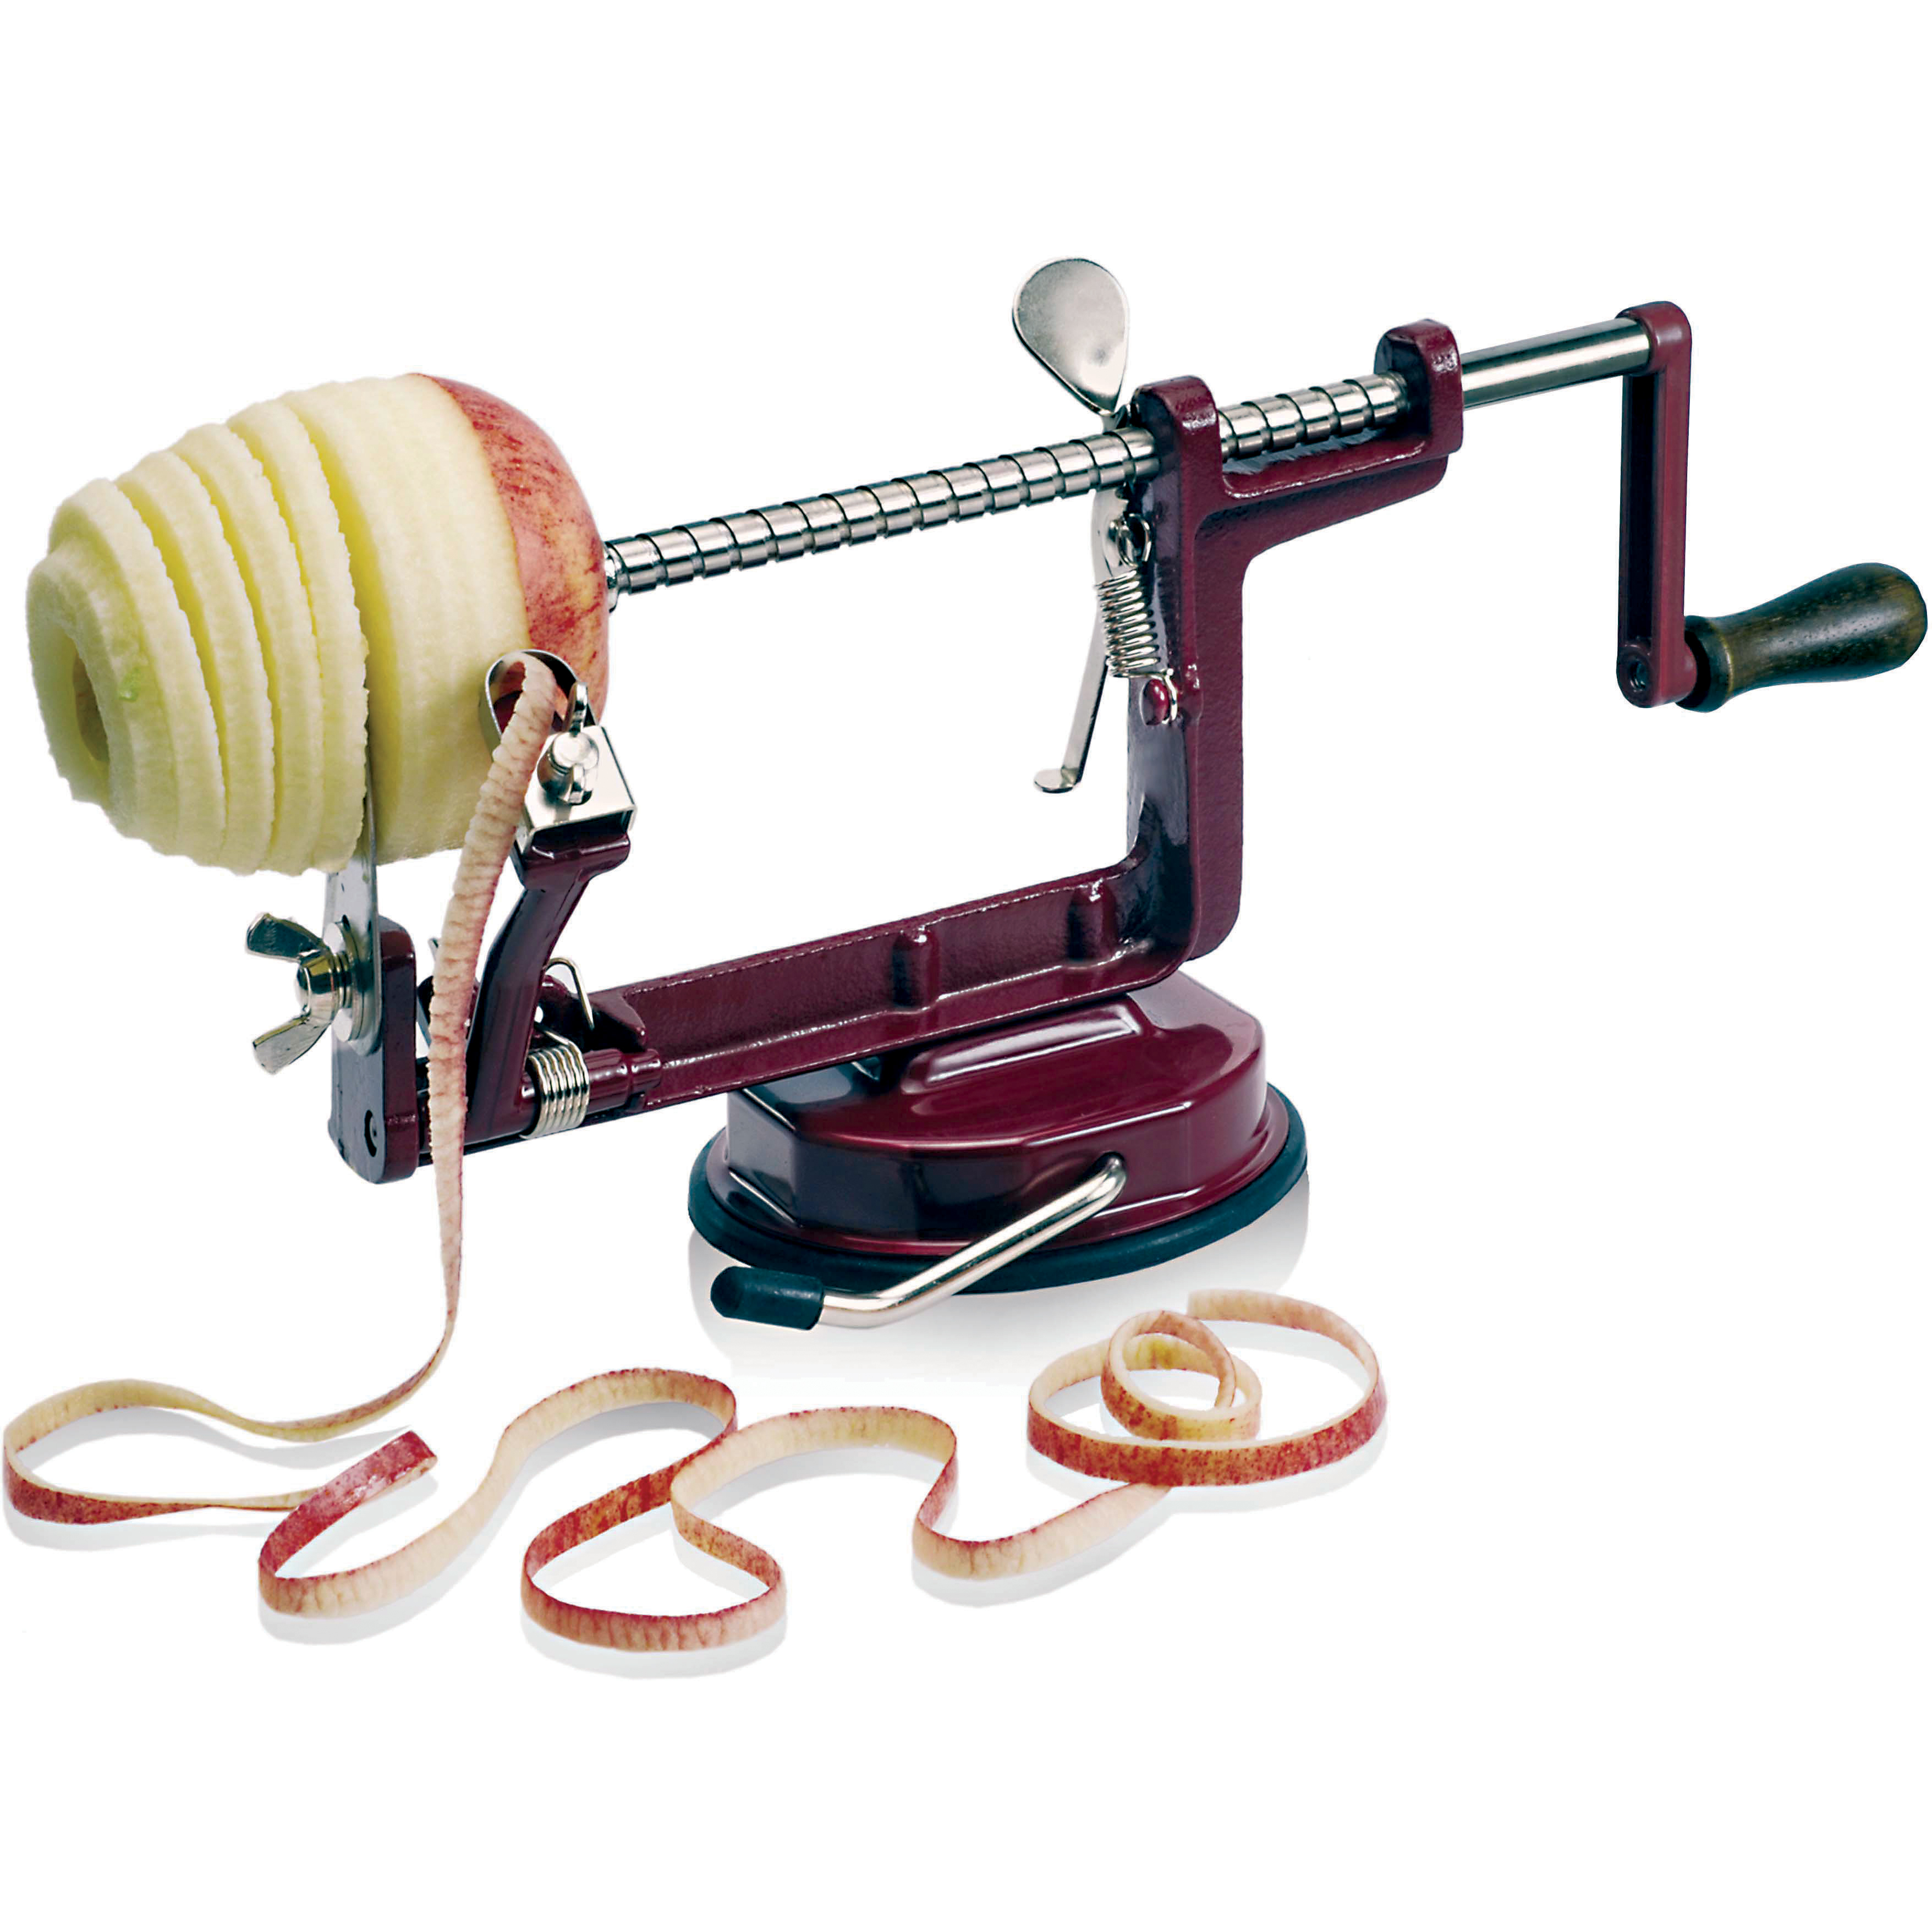 Paderno World Cuisine Stainless Steel Apple Peeler with Suction Cup